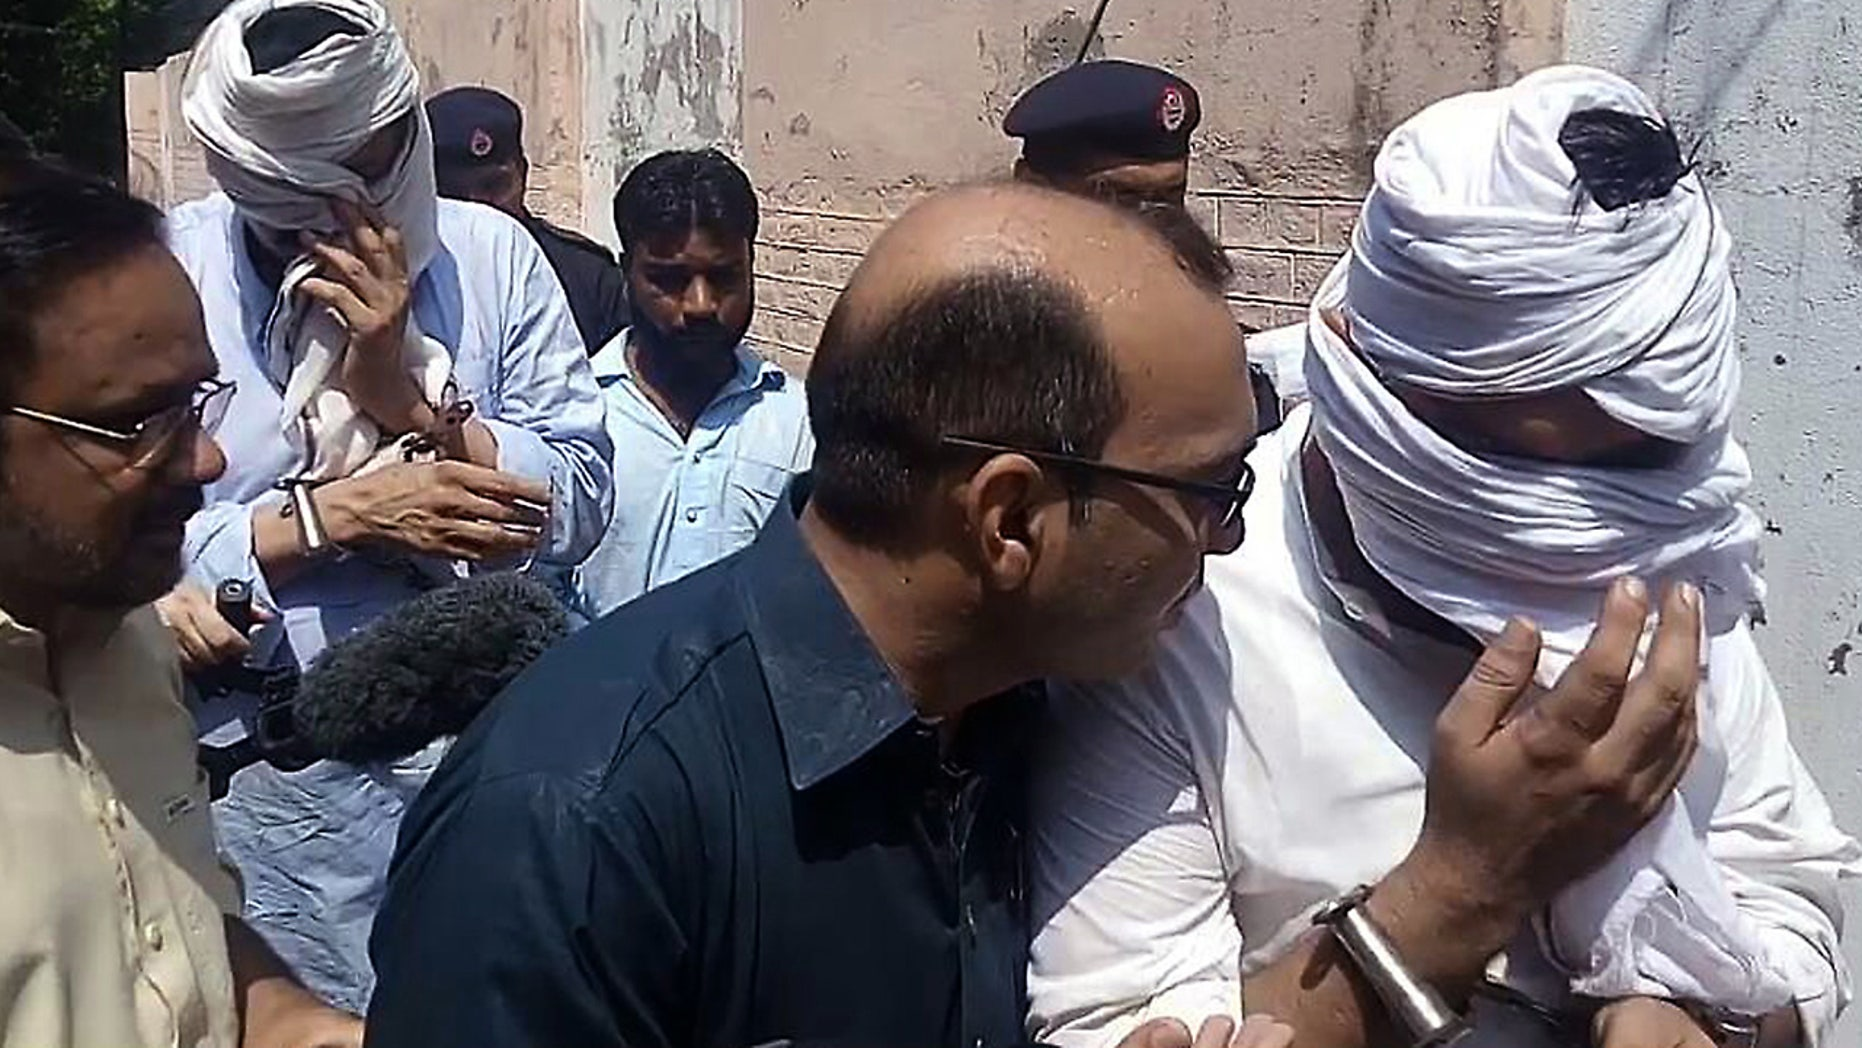 In this Monday, Sept. 5, 2016 photo, Pakistani police officers escort the detained father, second left face covered, and husband, right face covered, of slain British women Samia Shahid, to appear in court in Jhelum, in eastern Pakistan, Wednesday, Sept. 7, 2016.